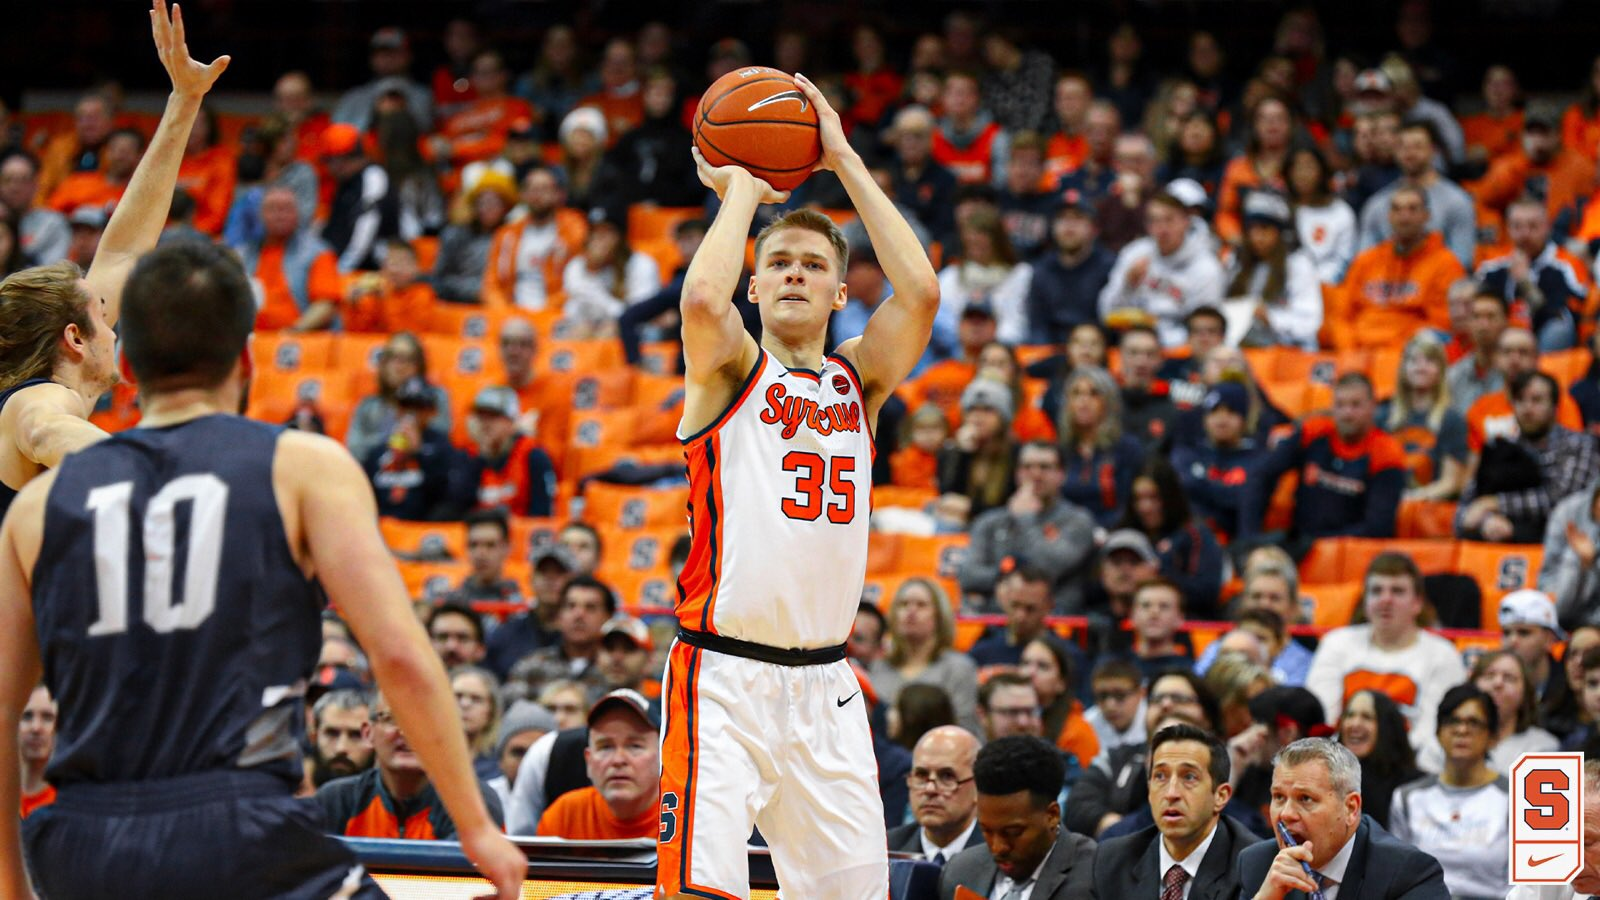 ORANGE GAME DAY: Syracuse takes on North Florida at Carrier Dome tonight (preview & info)